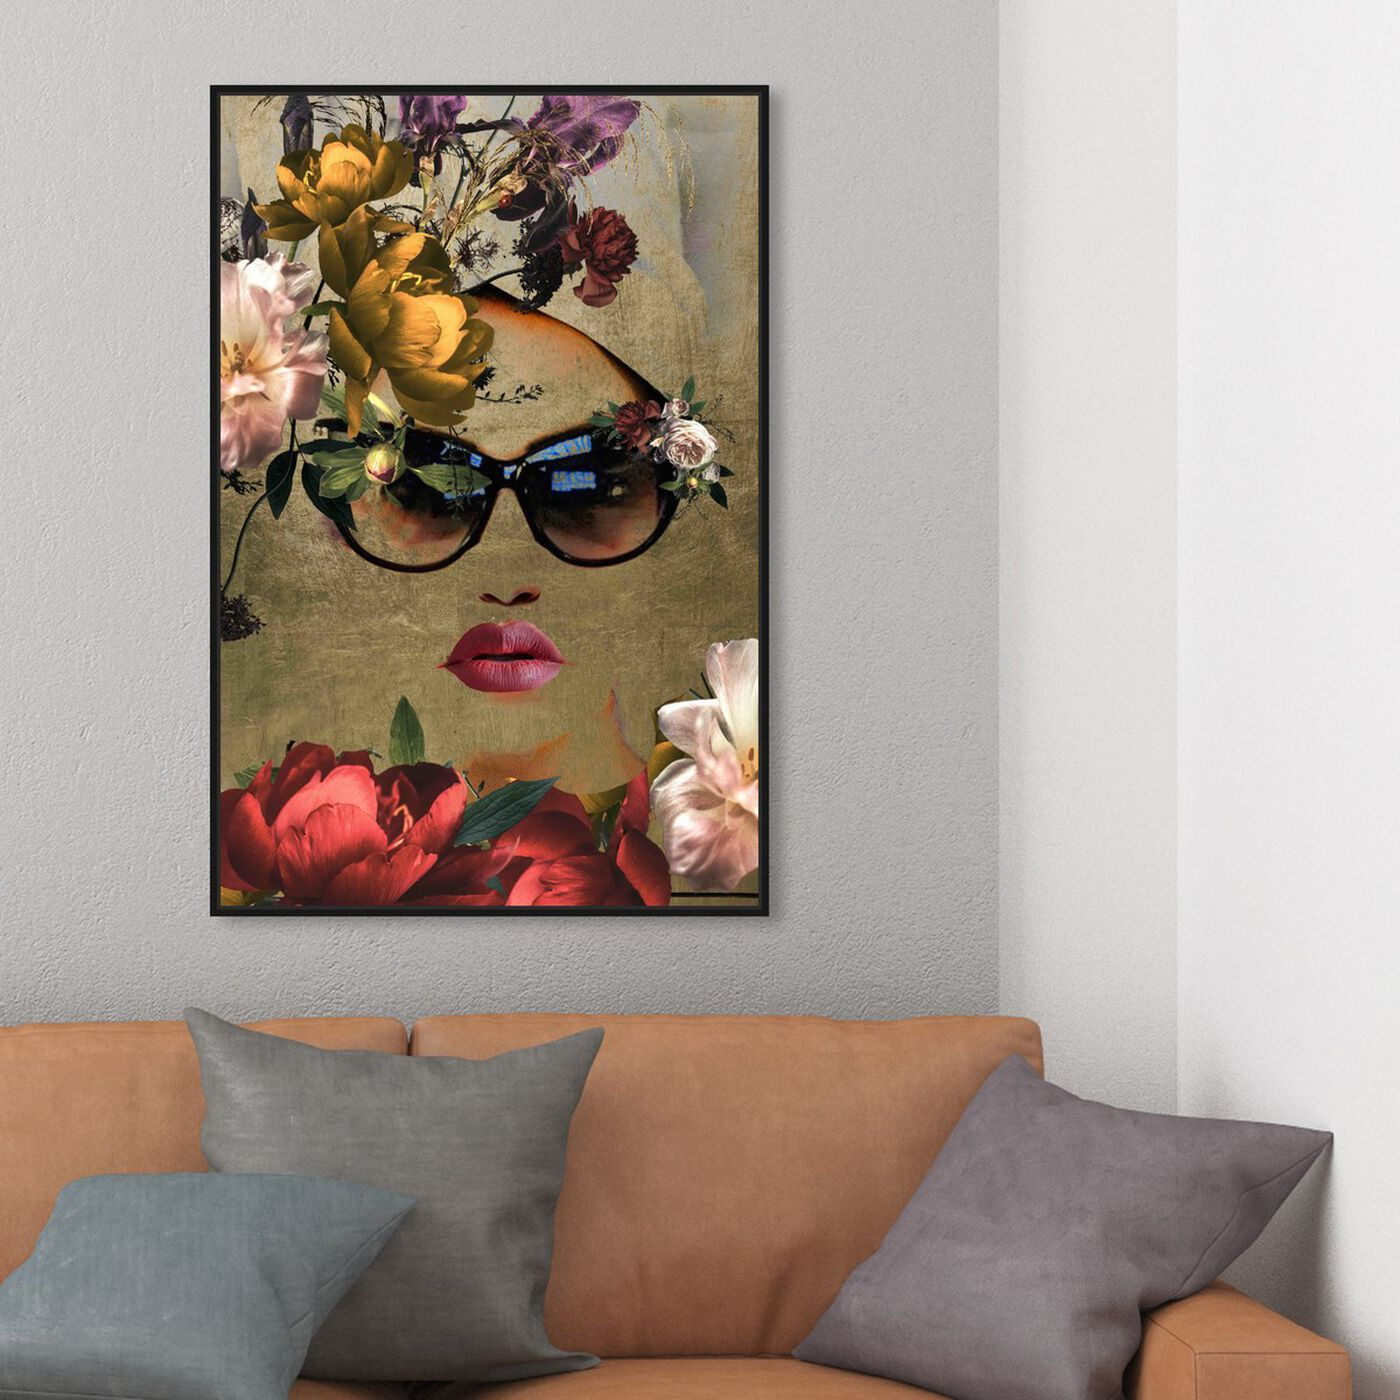 Hanging view of Mambo Queen featuring fashion and glam and lips art.